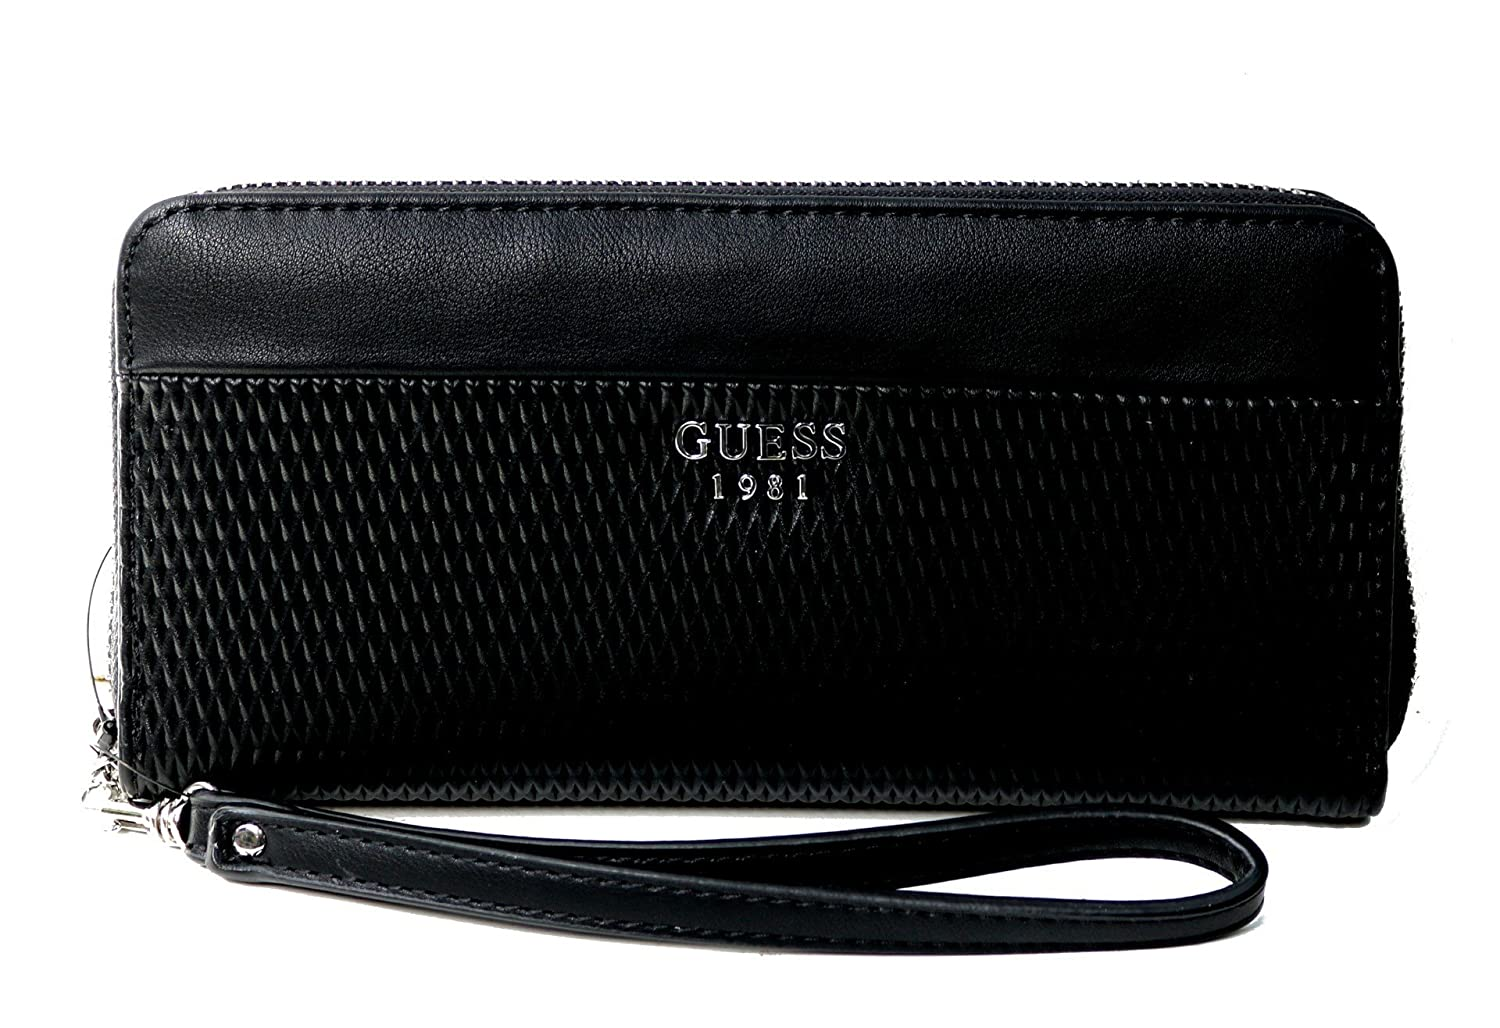 Guess Blakley large zip around Geldbörse – Schwarz: Amazon